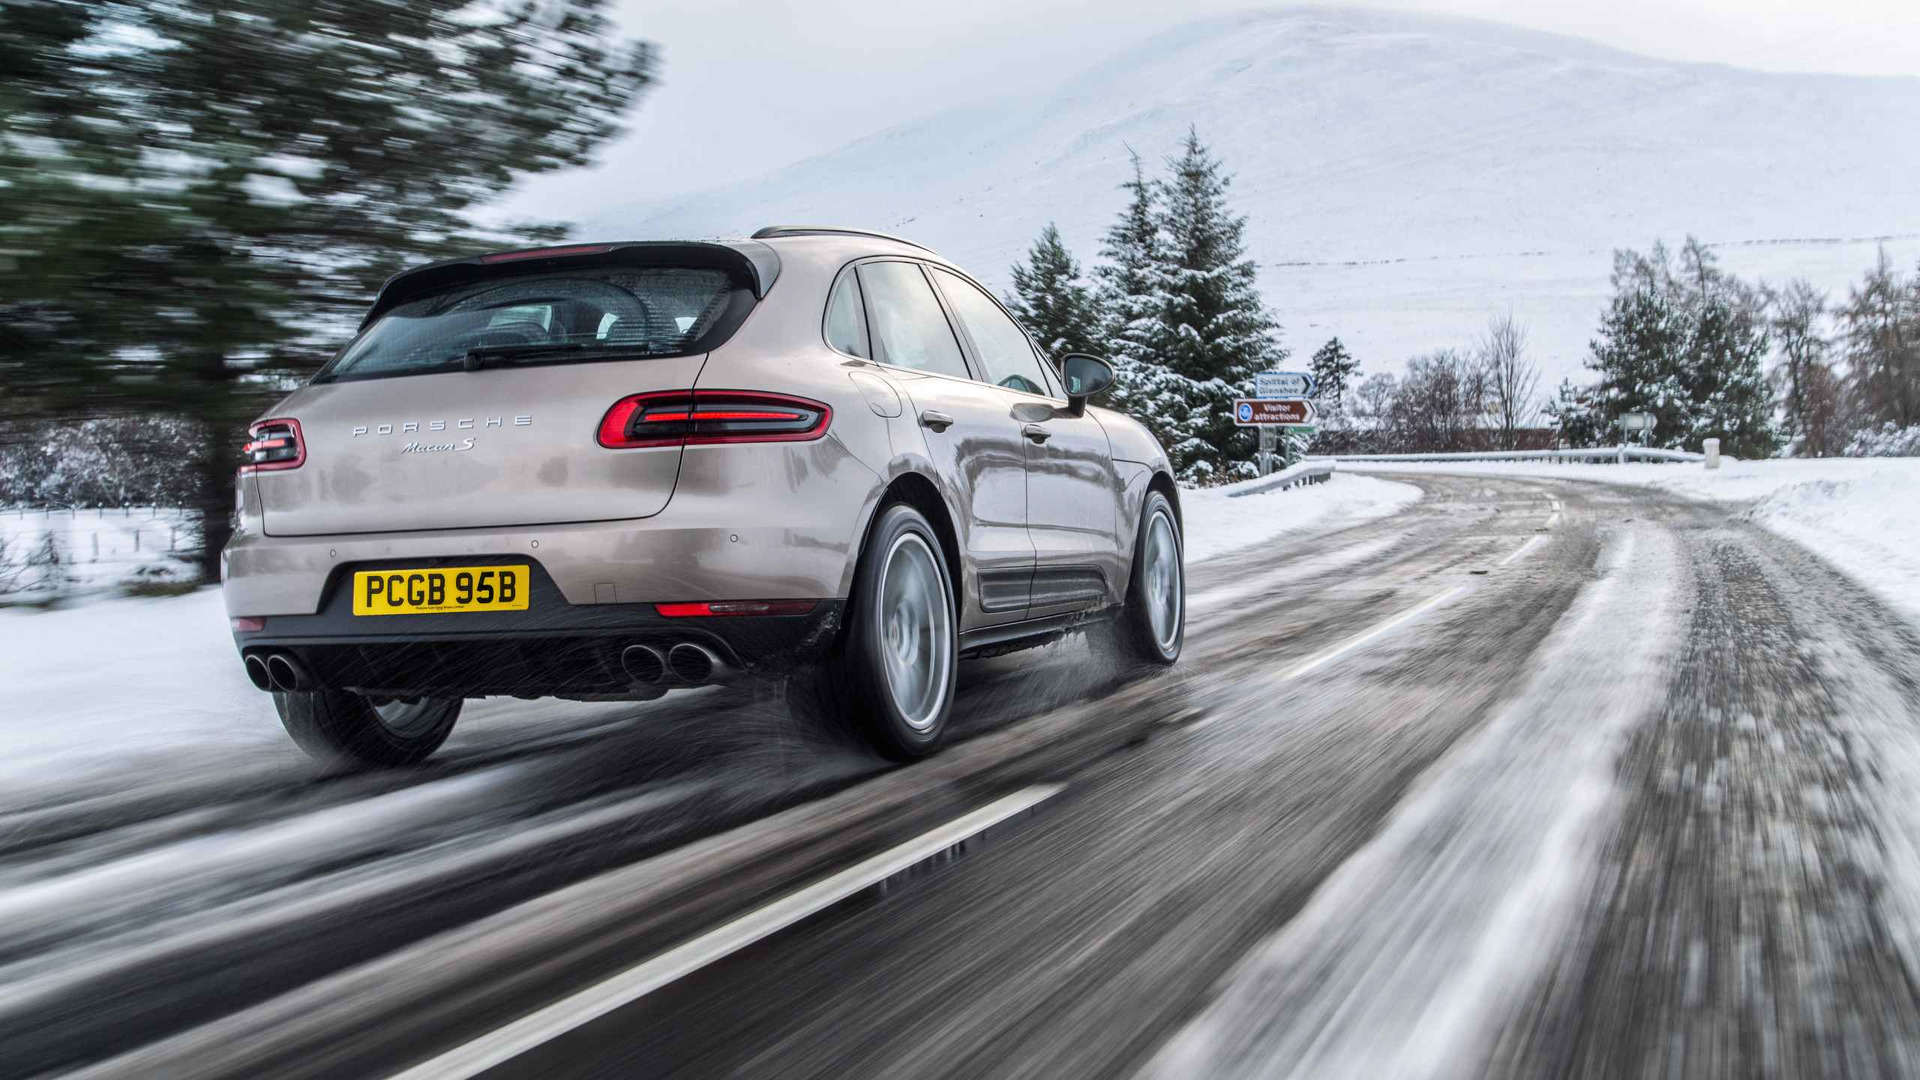 2016 Porsche Macan review The enthusiast s SUV